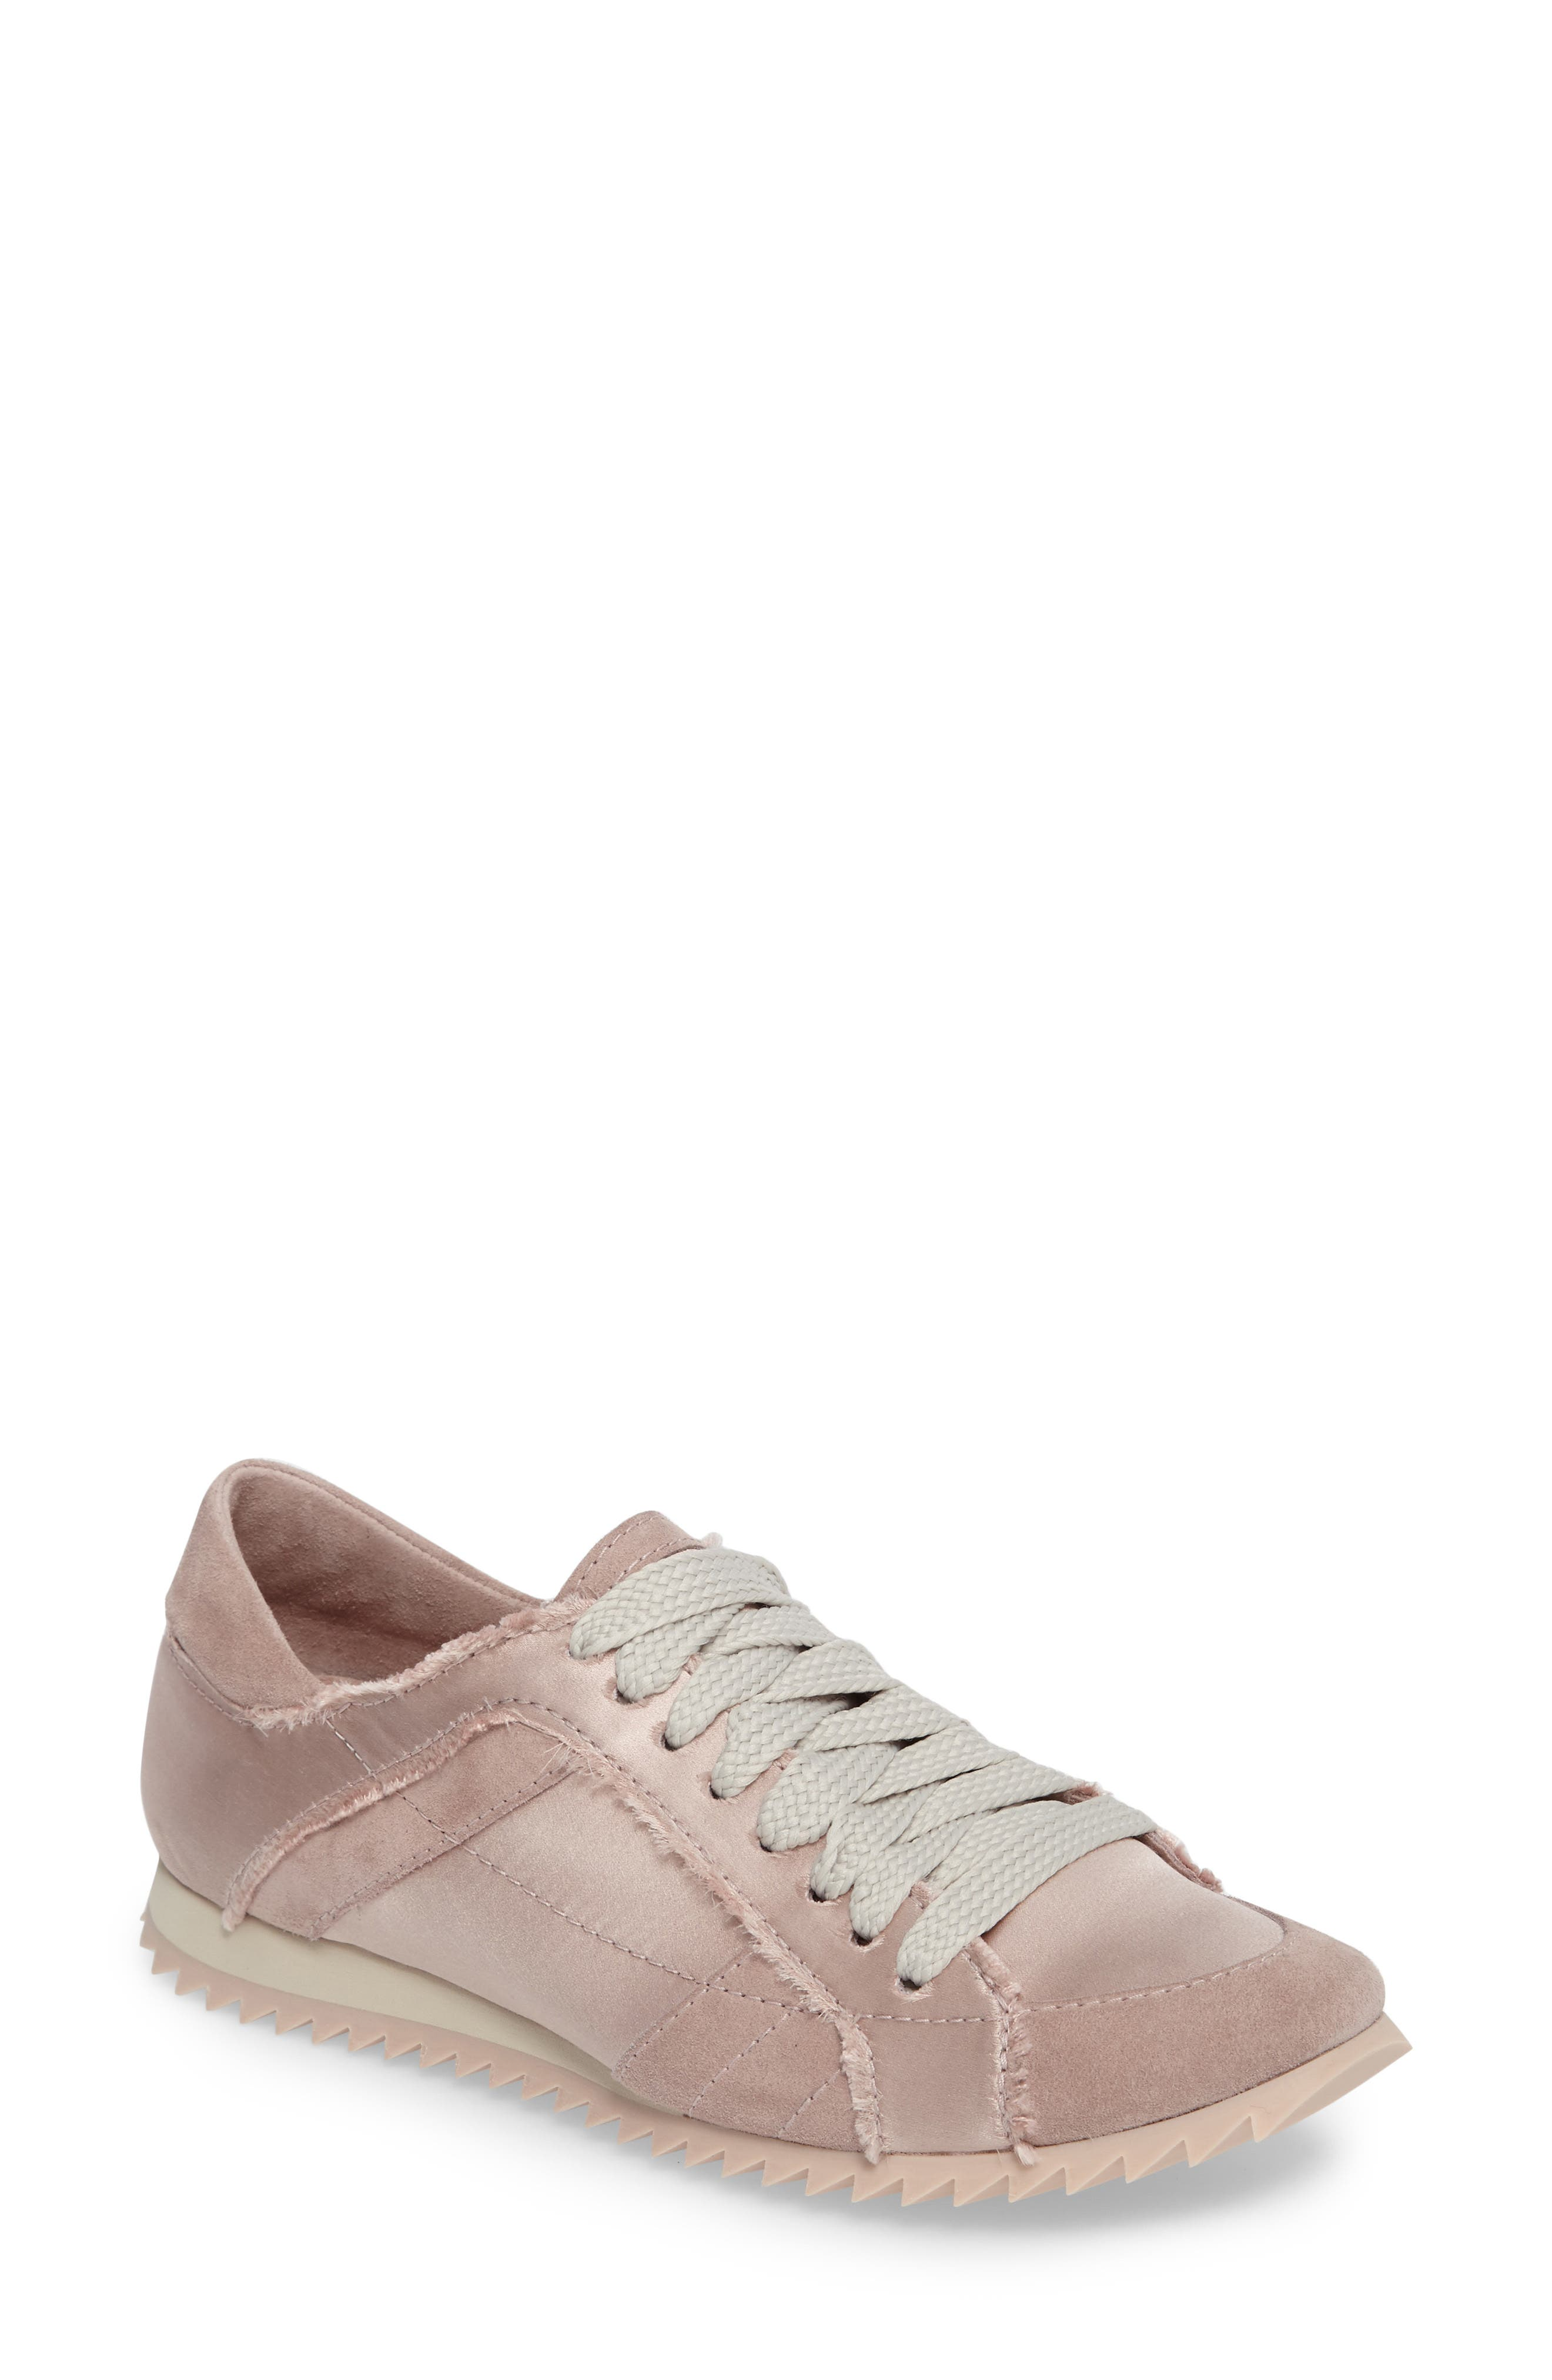 Cristina Trainer Sneaker,                             Main thumbnail 1, color,                             Light Pink Satin